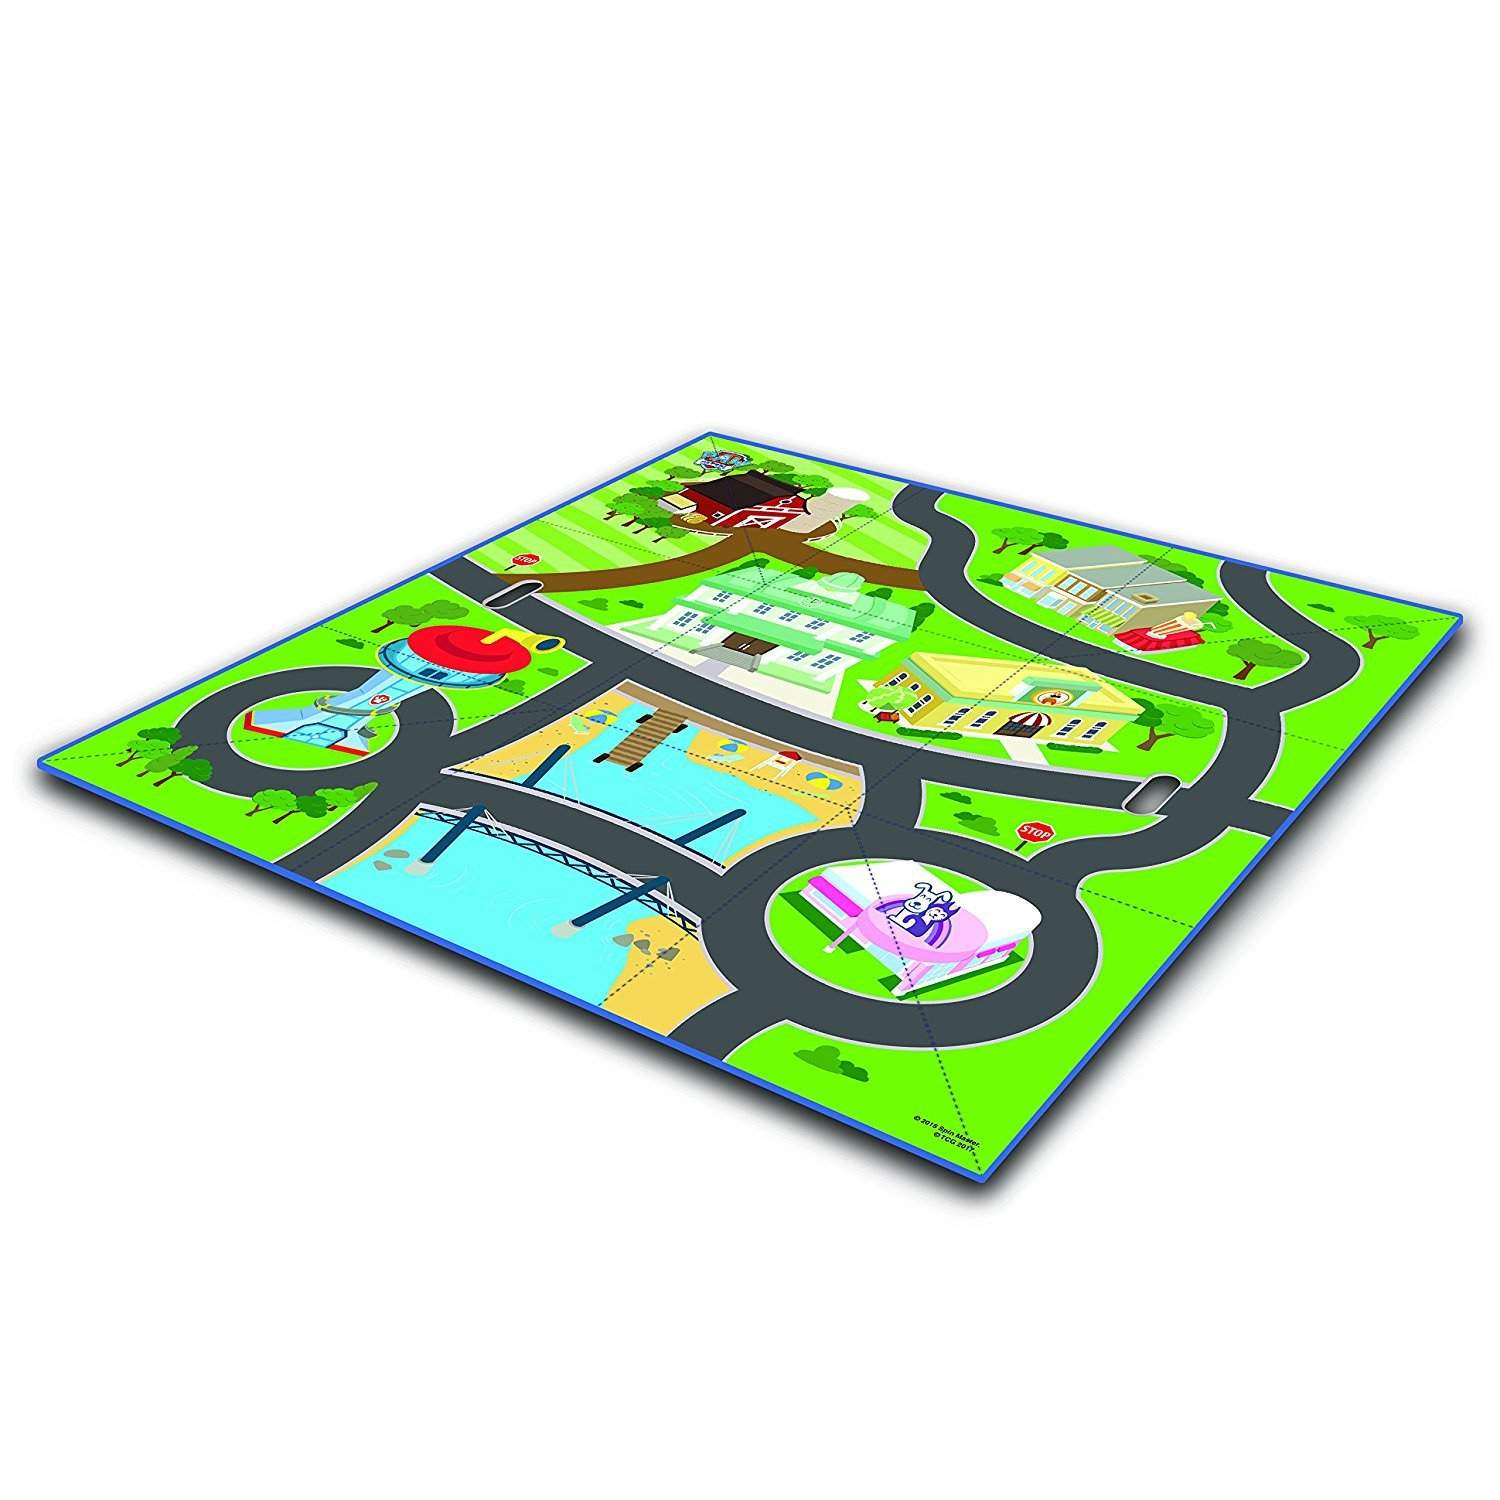 Paw Patrol Tidy Town Storage Box with Mat by Paw Patrol